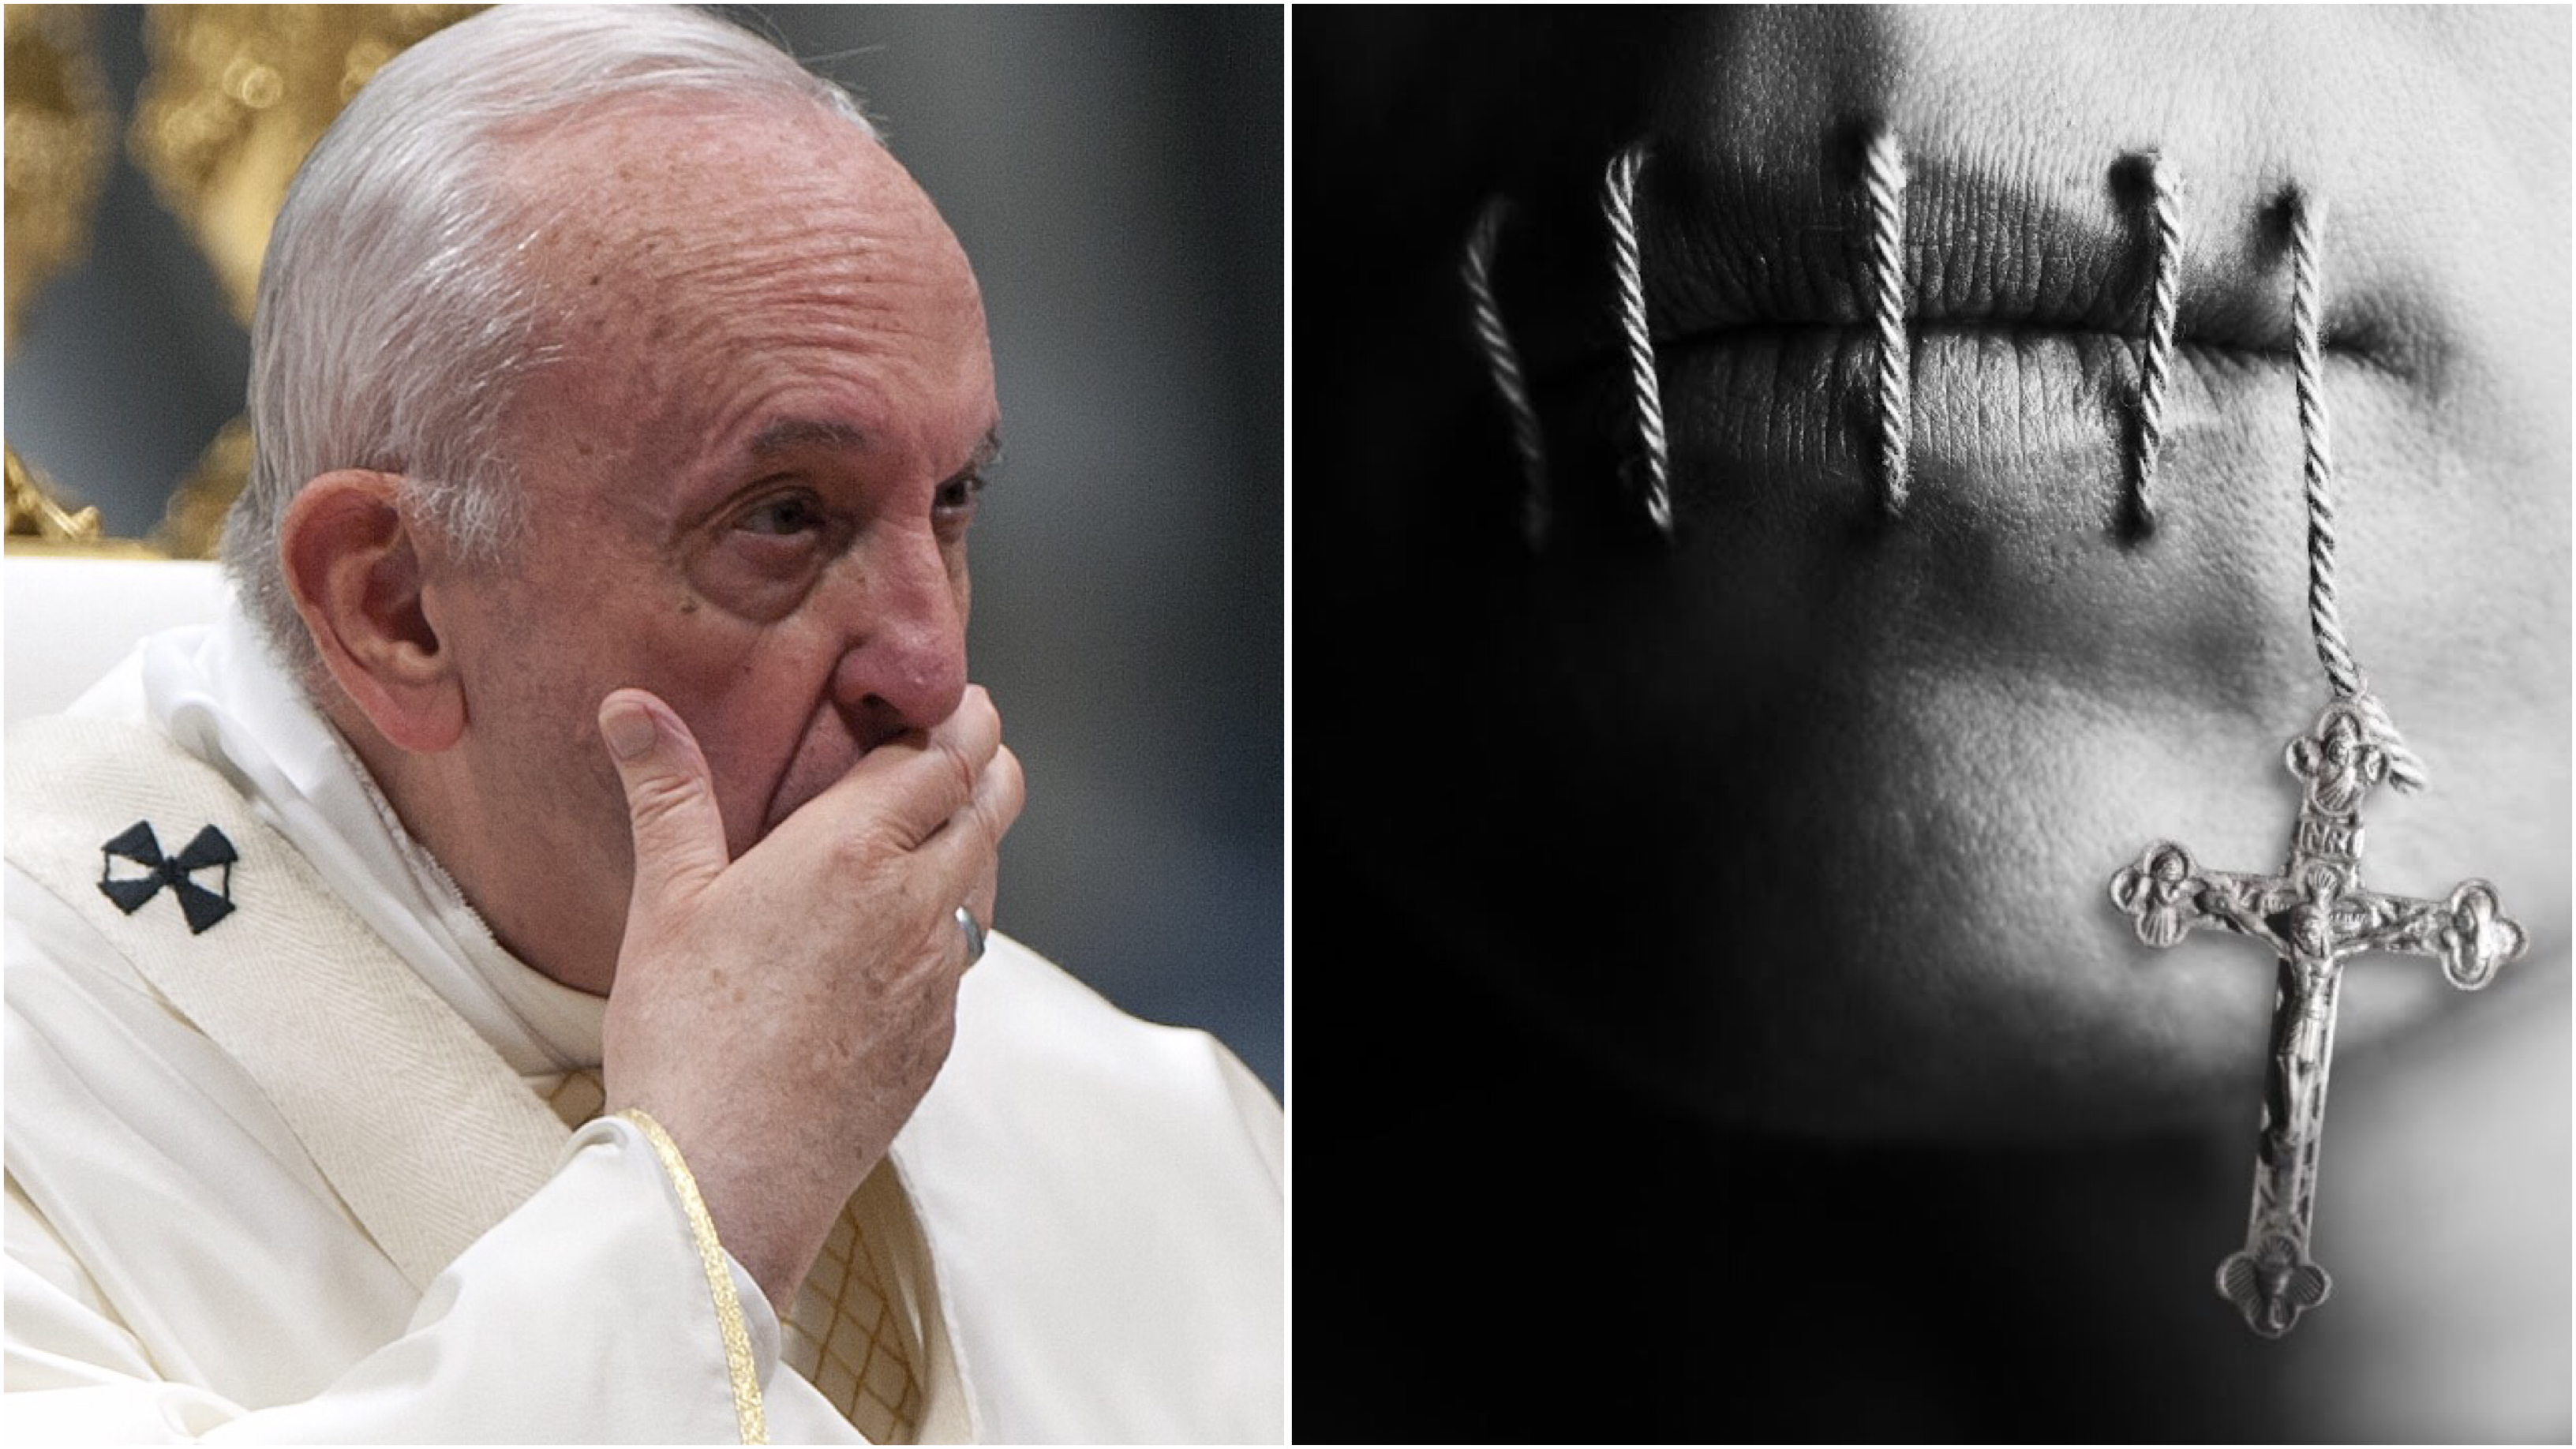 Pope 'concerned' over controversial paedophilia documentary